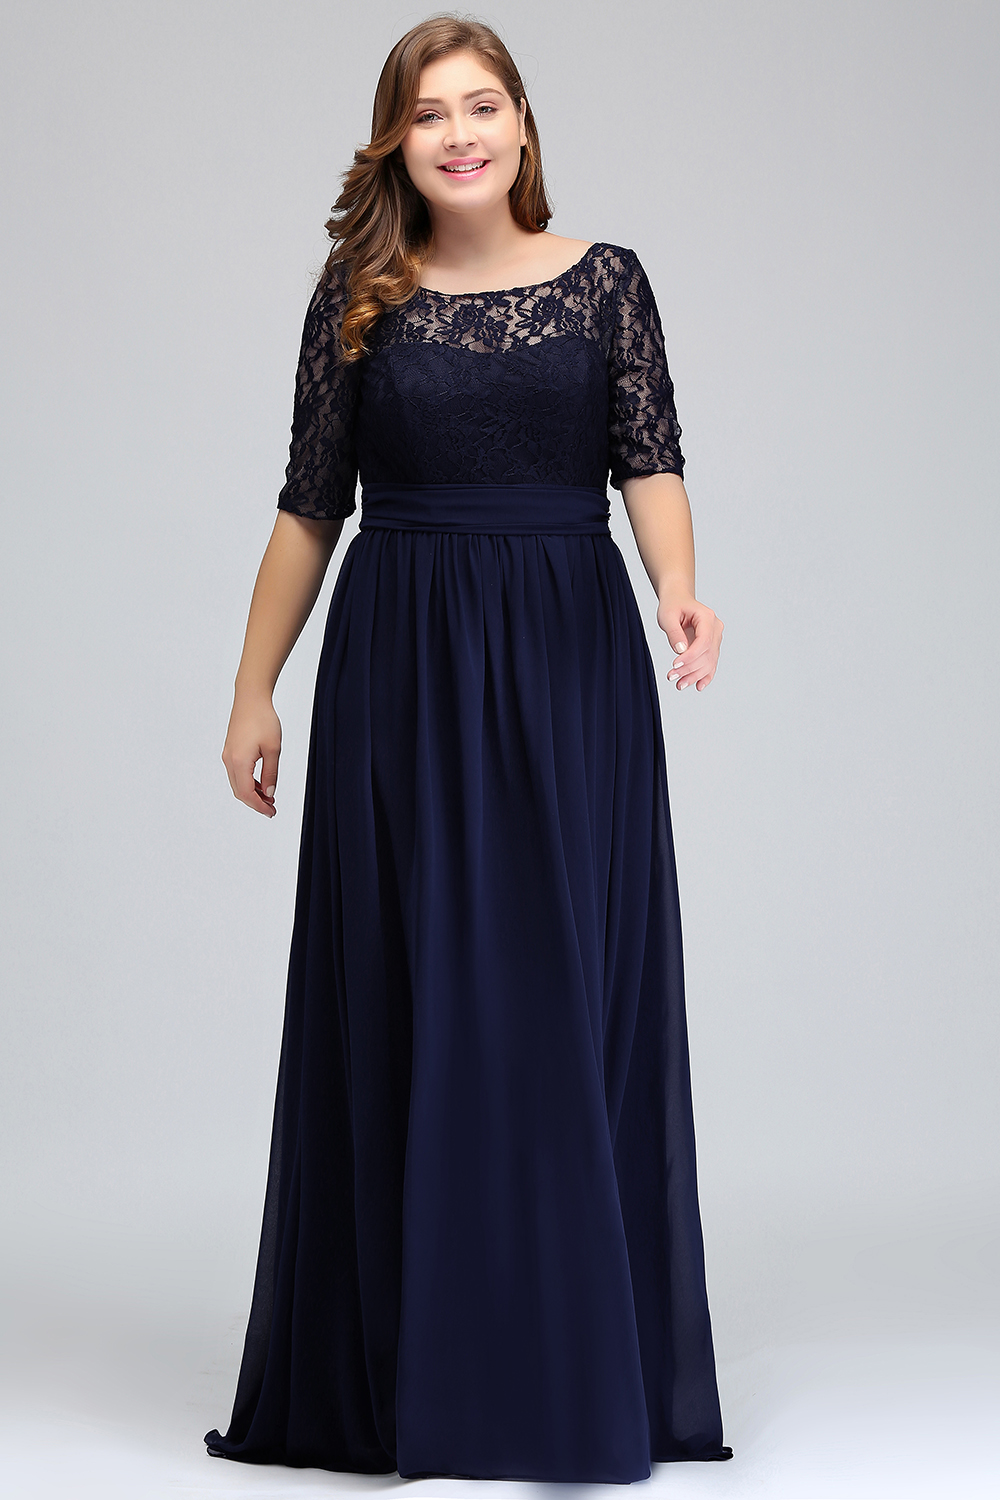 HTB1IT2zeLDH8KJjy1Xcq6ApdXXaTChiffon Lace Plus size Long Evening Dress